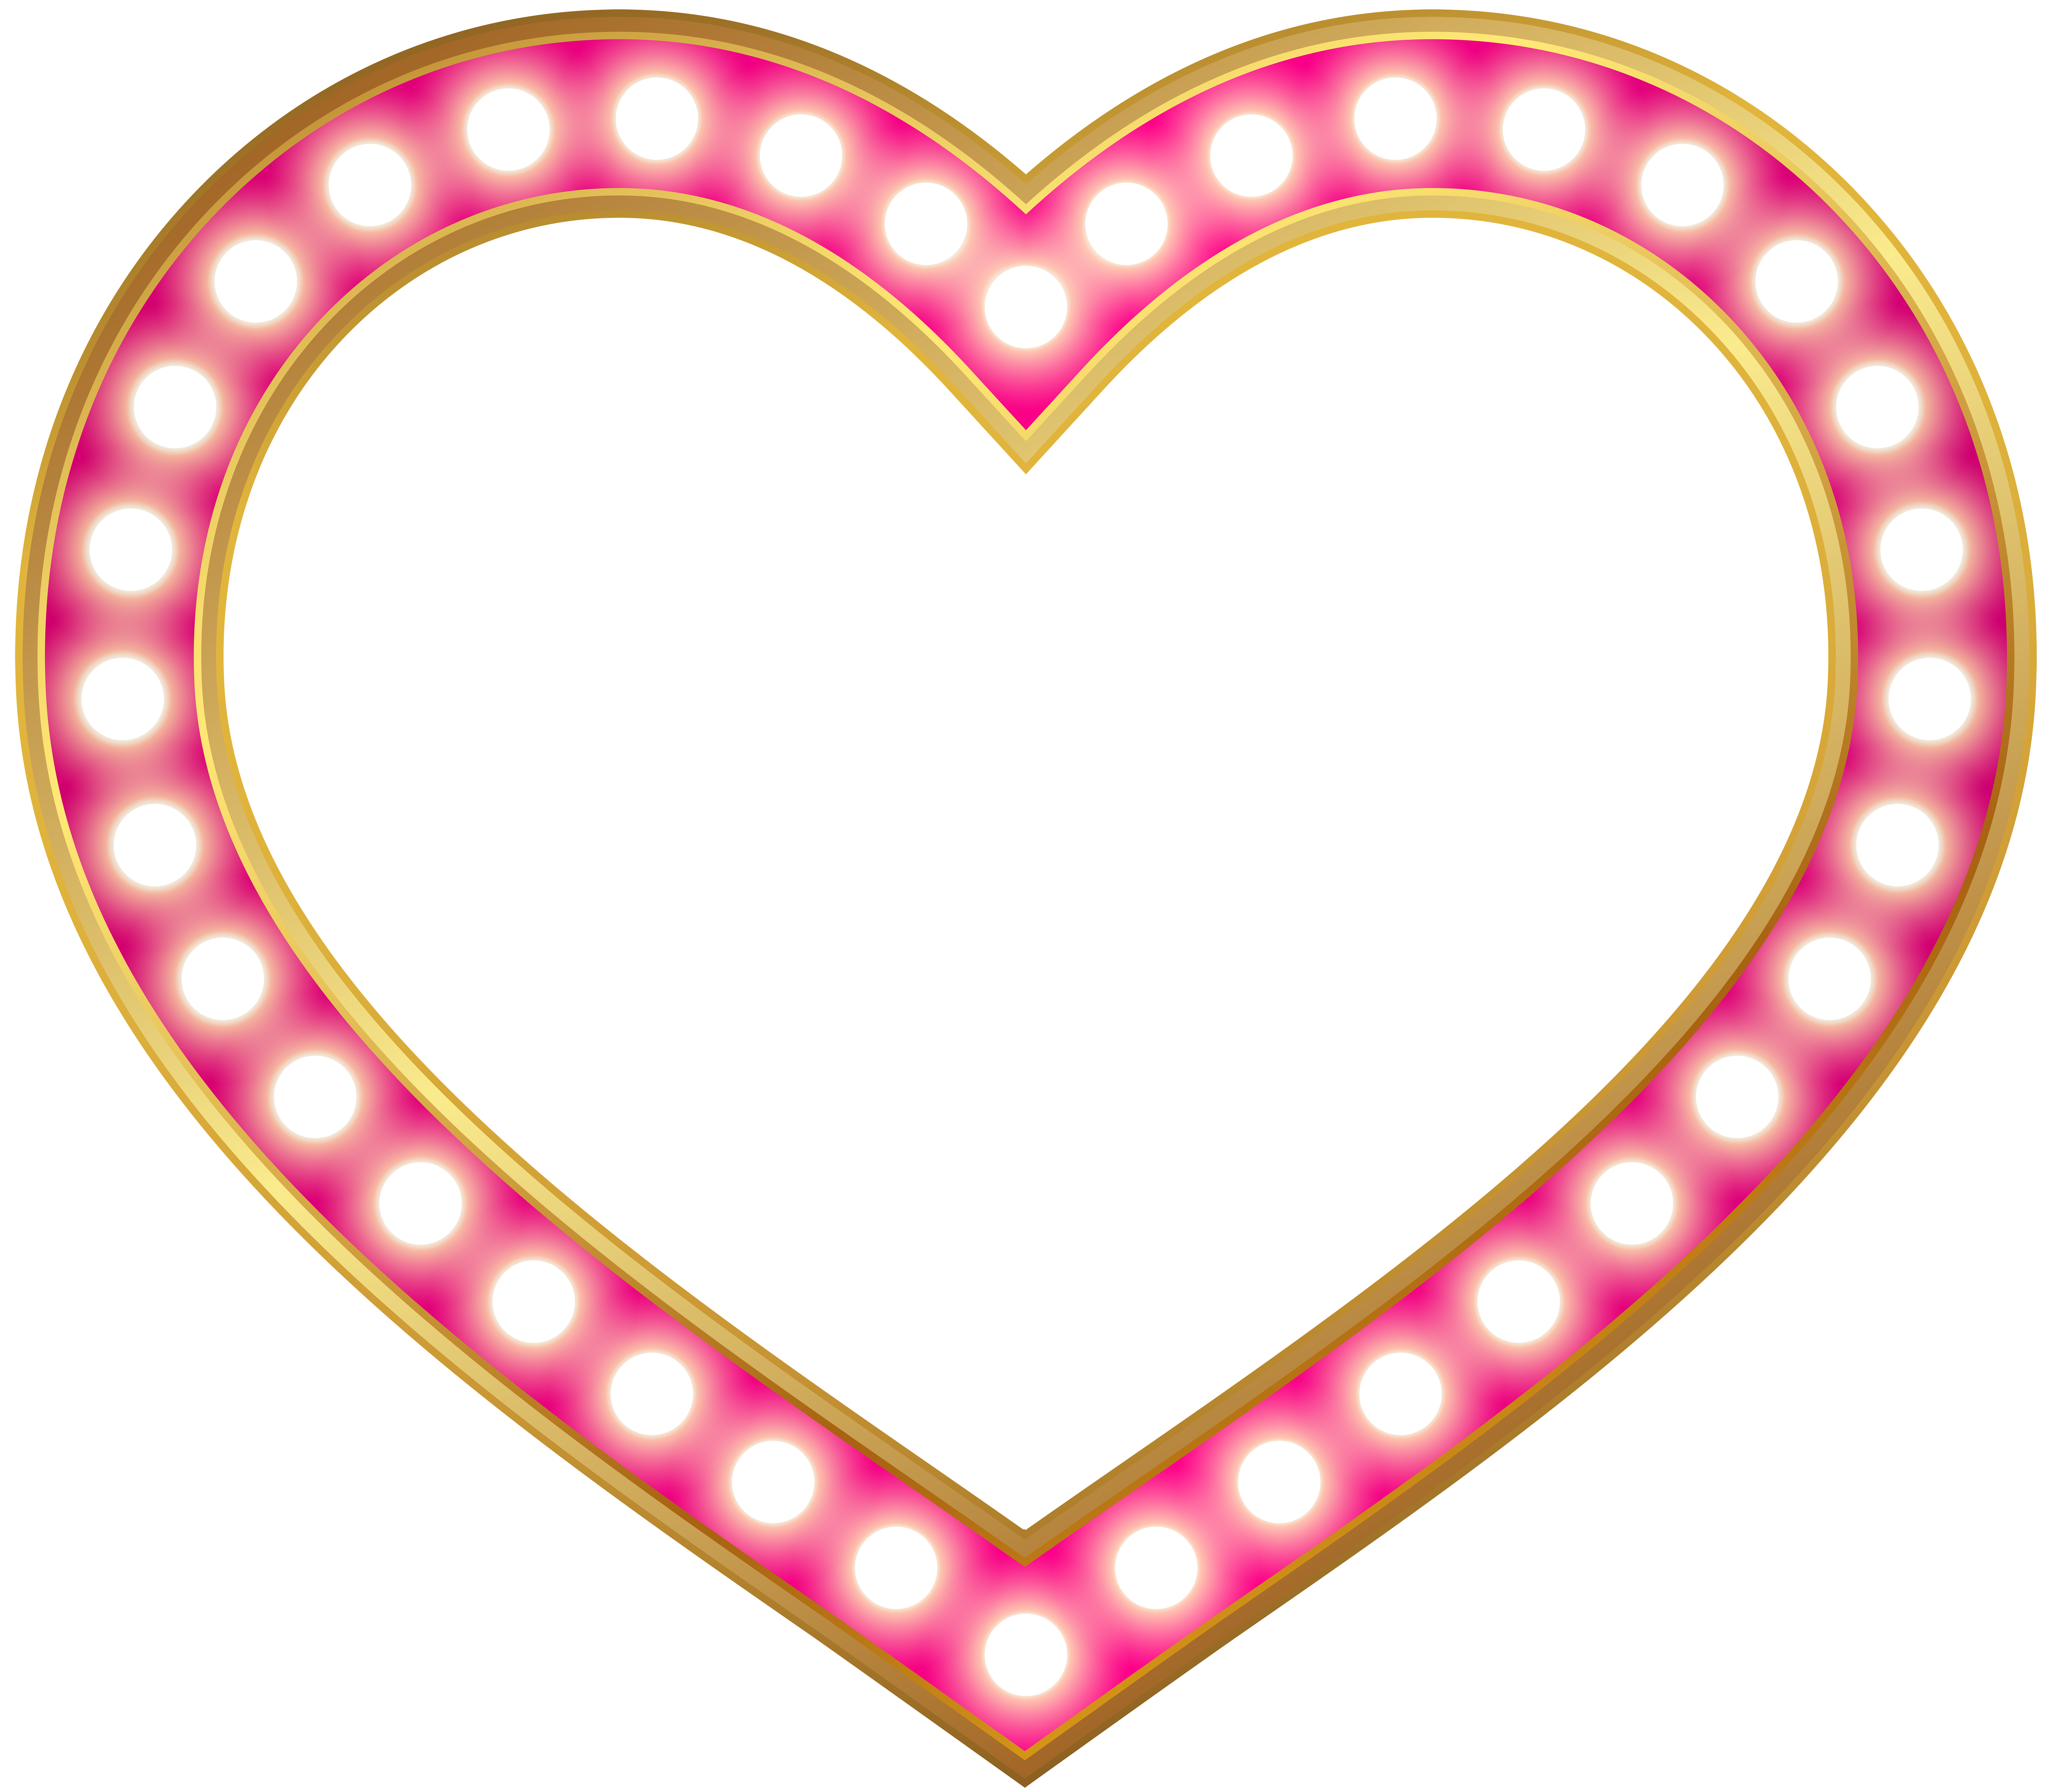 Glowing Heart Border Frame PNG Clip Art.